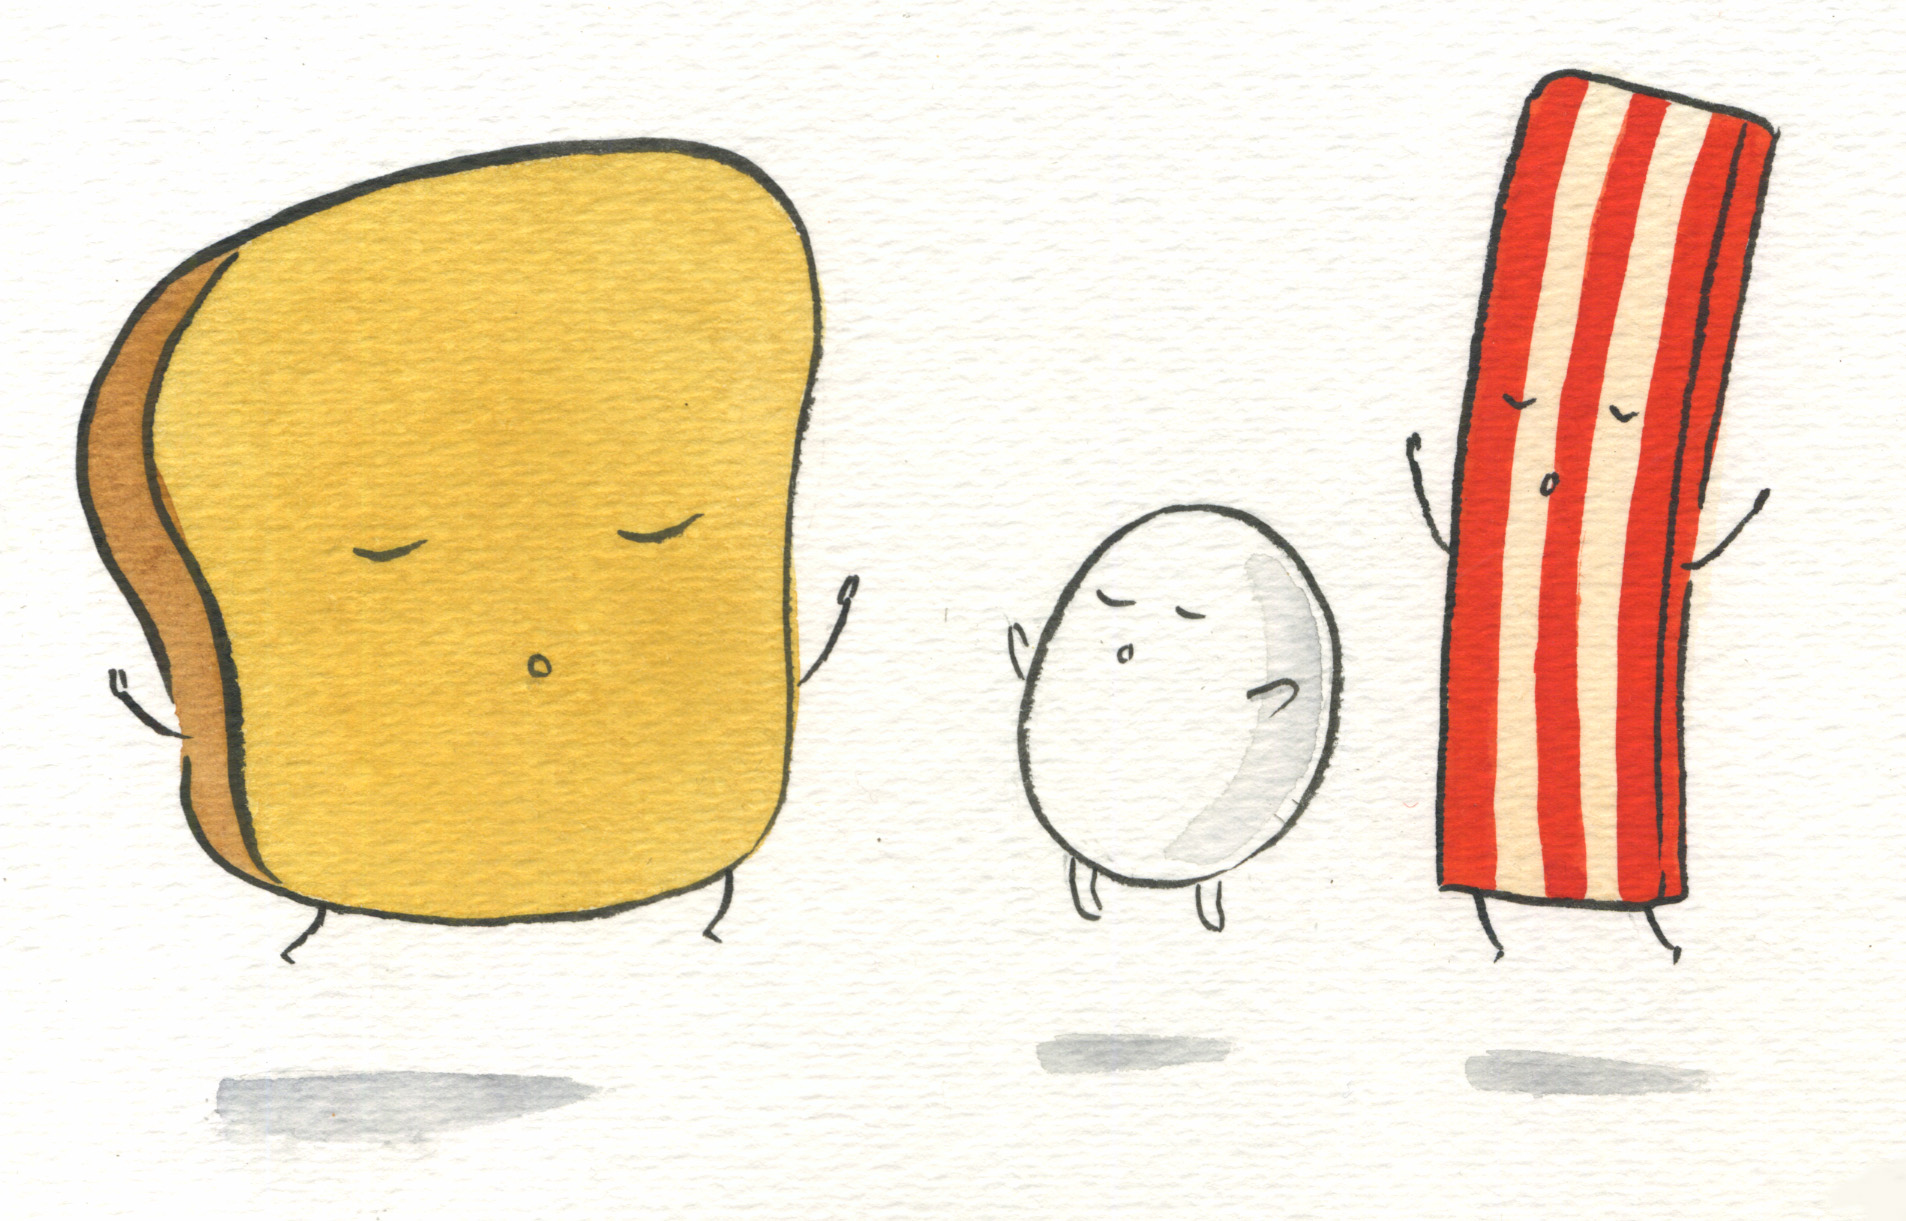 Indiegogo-funded Irresponsibility: The Mr Toast card game was a $10,000 prize from Hasbro late last year.